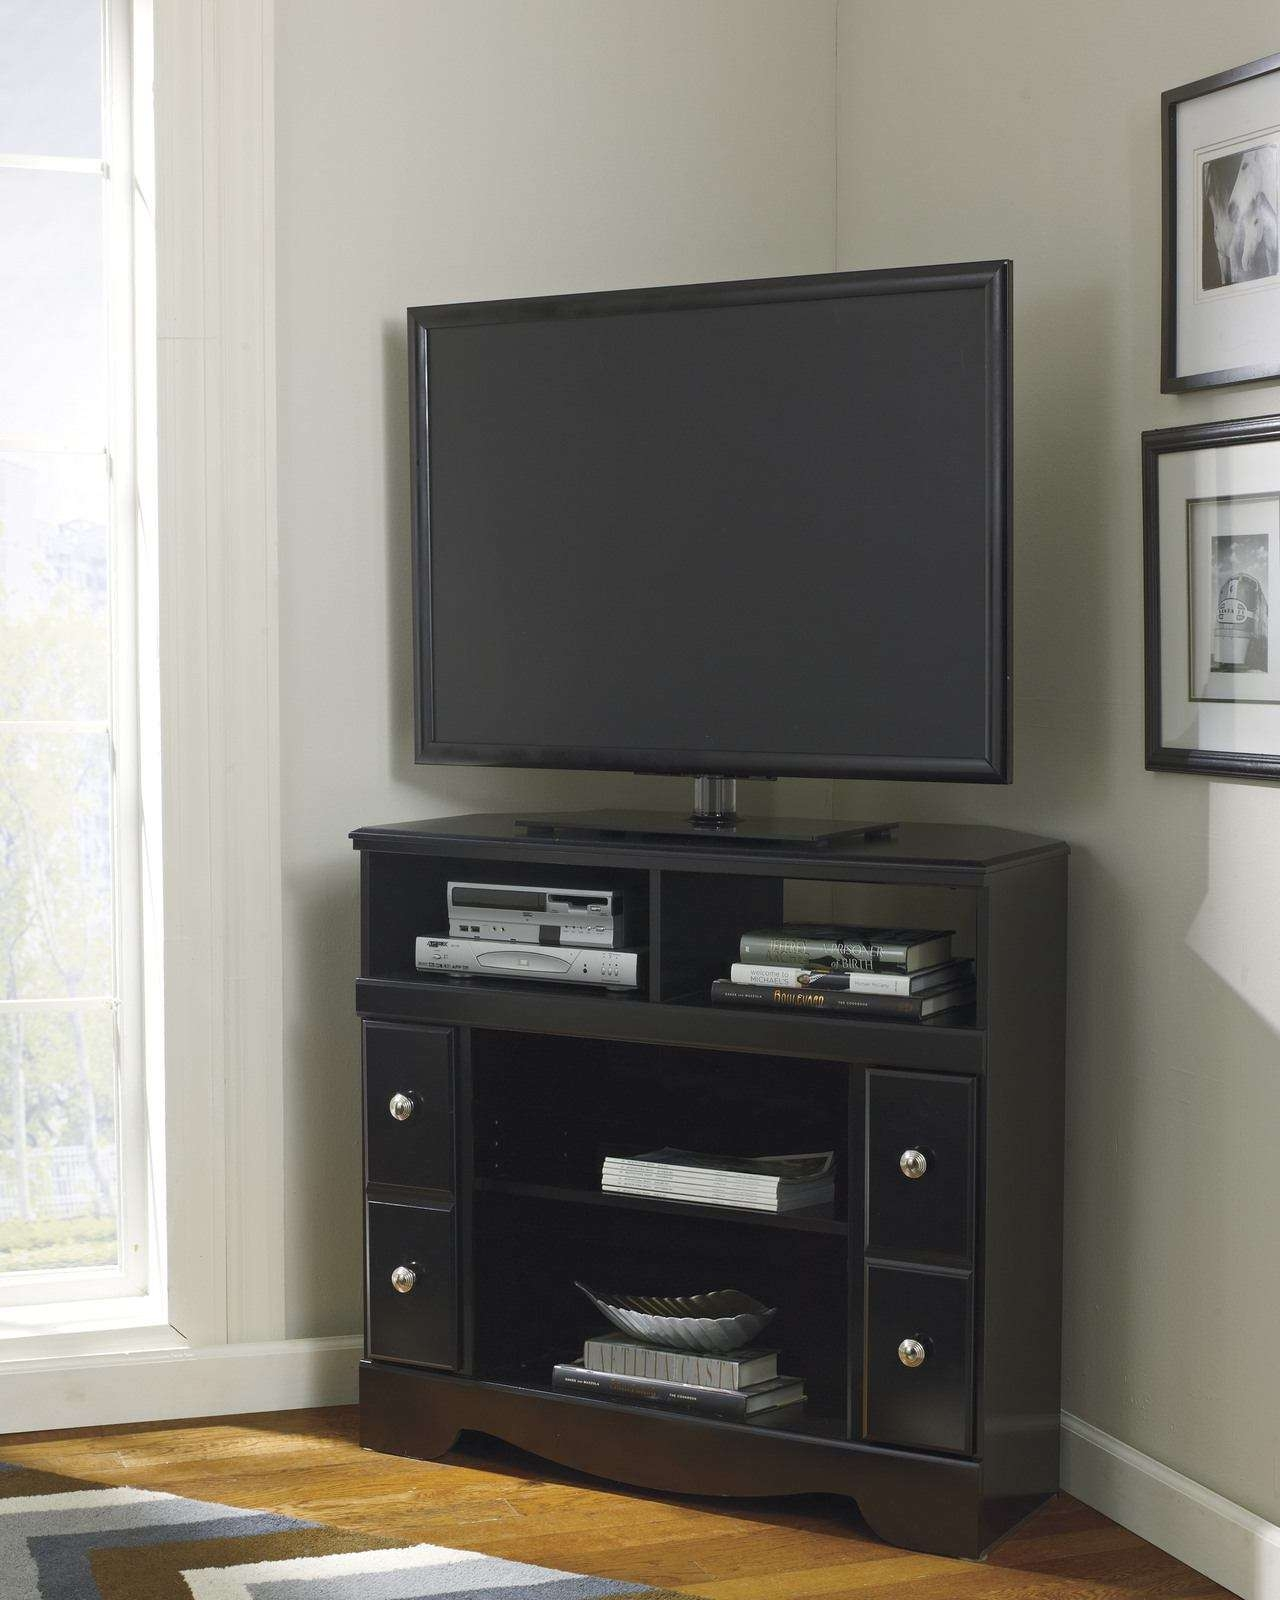 Corner Tv Stand With Fireplace Option In Black W271 12 Throughout Corner Tv Stands (View 12 of 15)